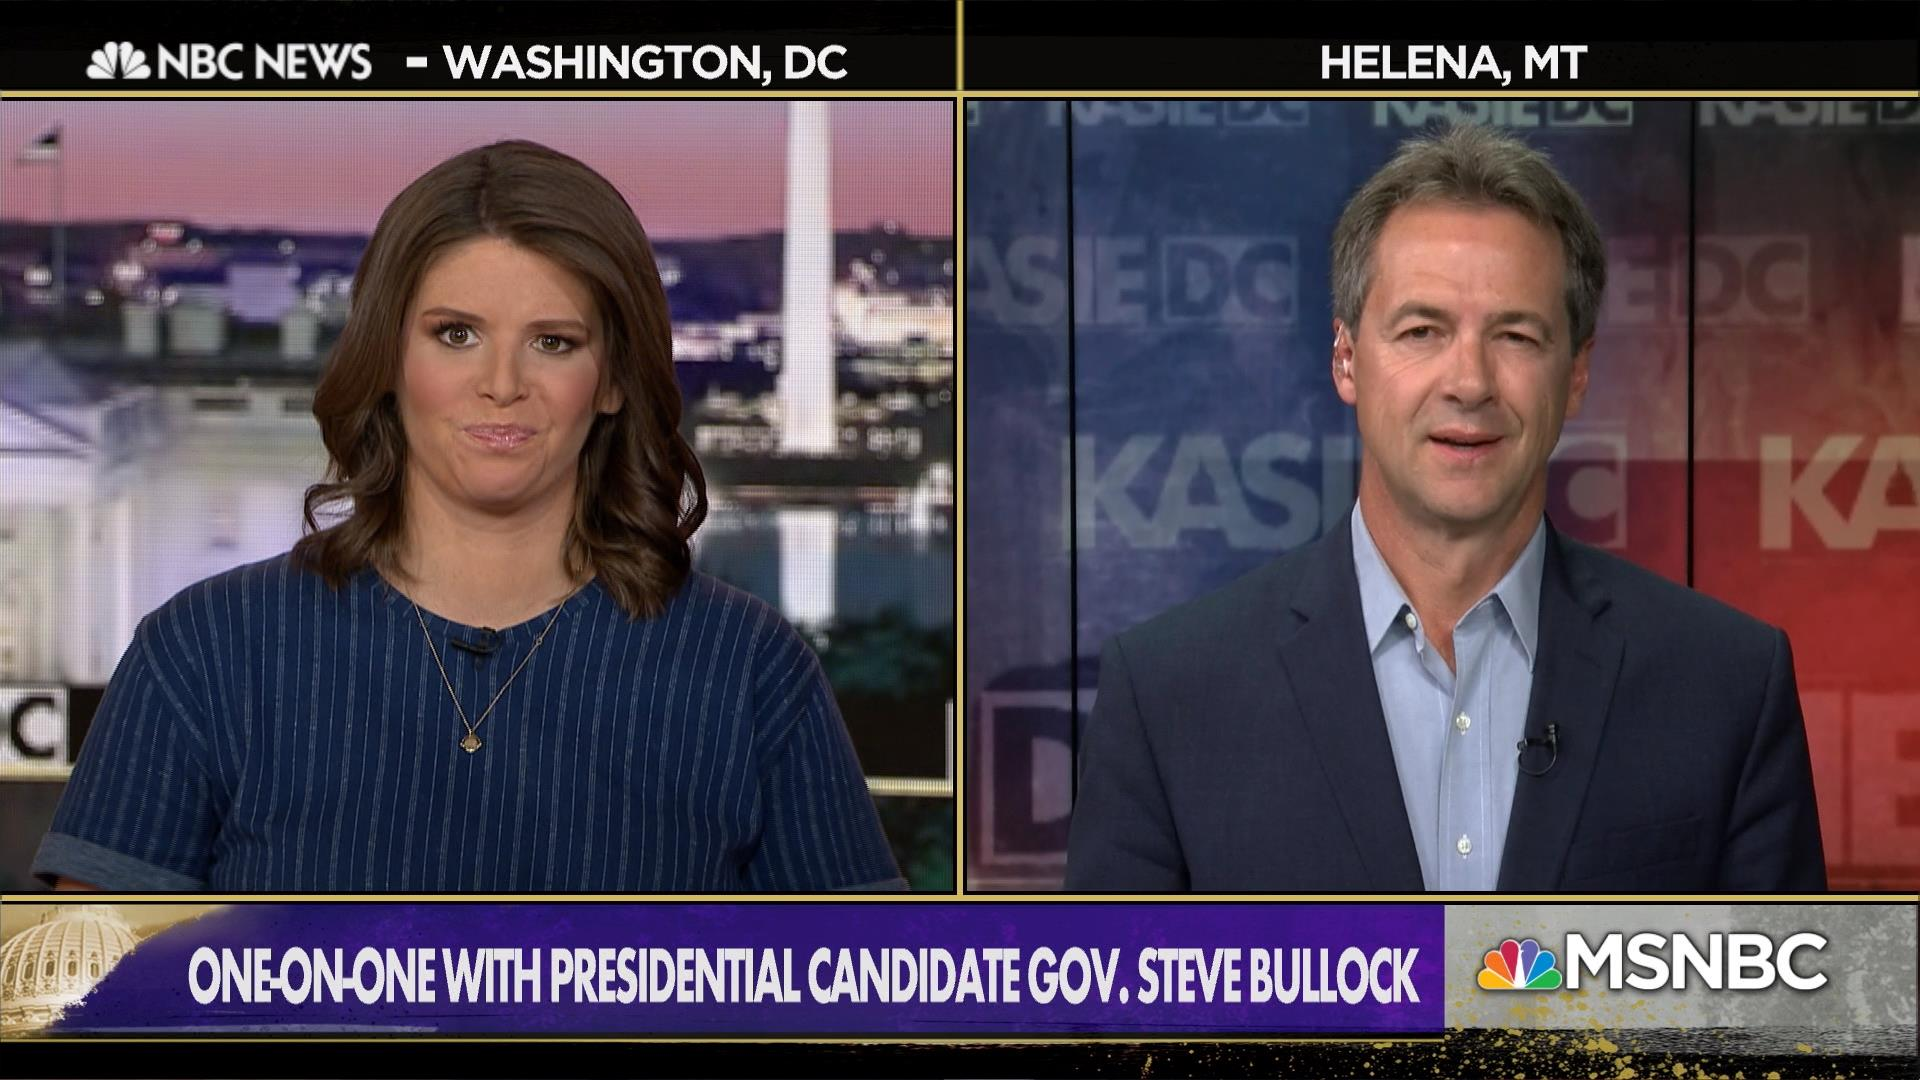 Left off the first debate stage, Gov. Steve Bullock presses forward with a vision of winning where his party has lost